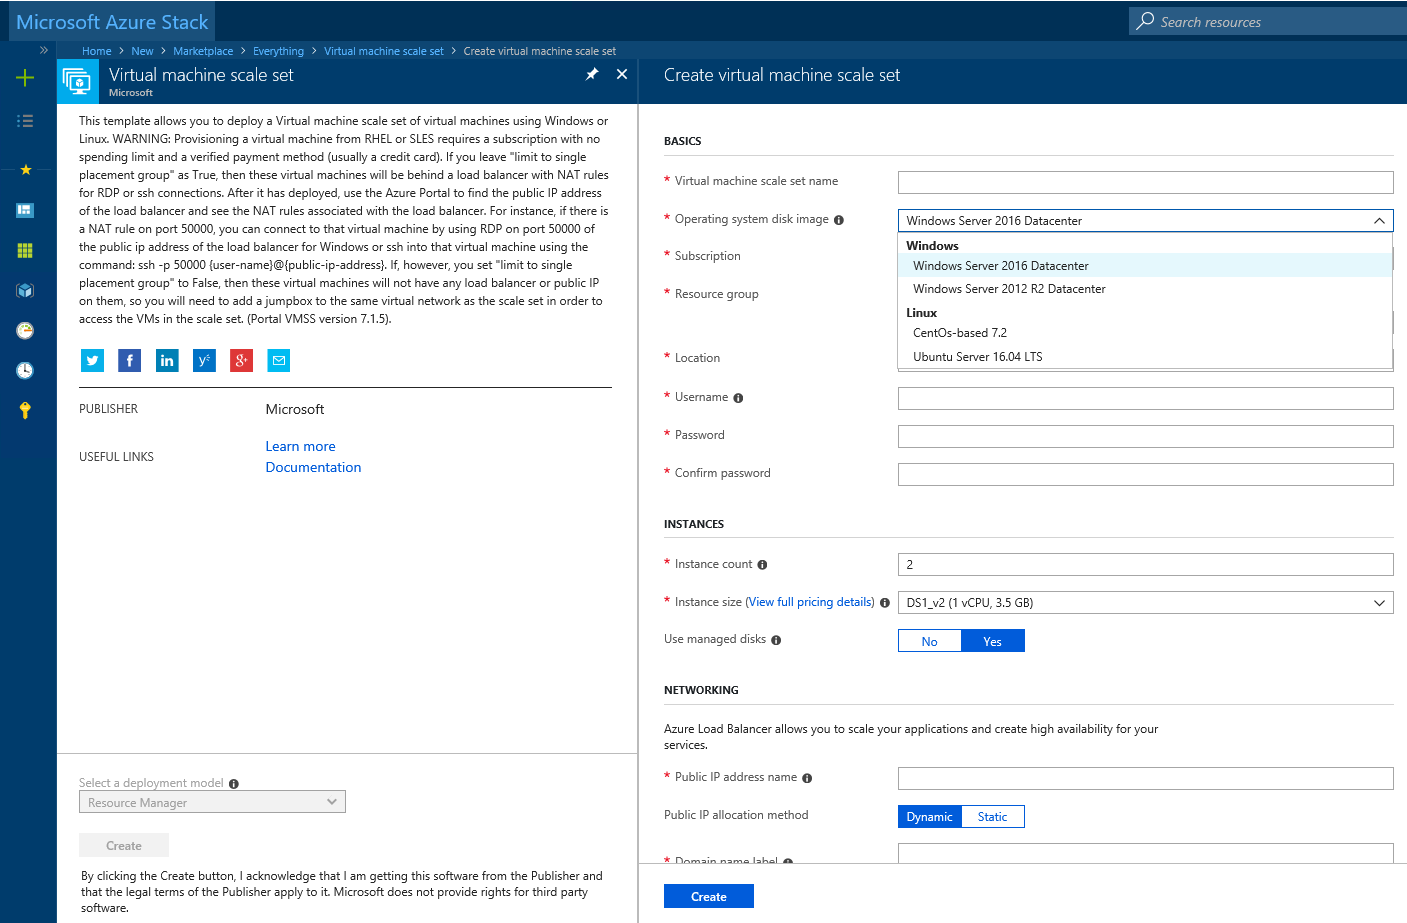 Create a virtual machine scale set in Microsoft Azure Stack